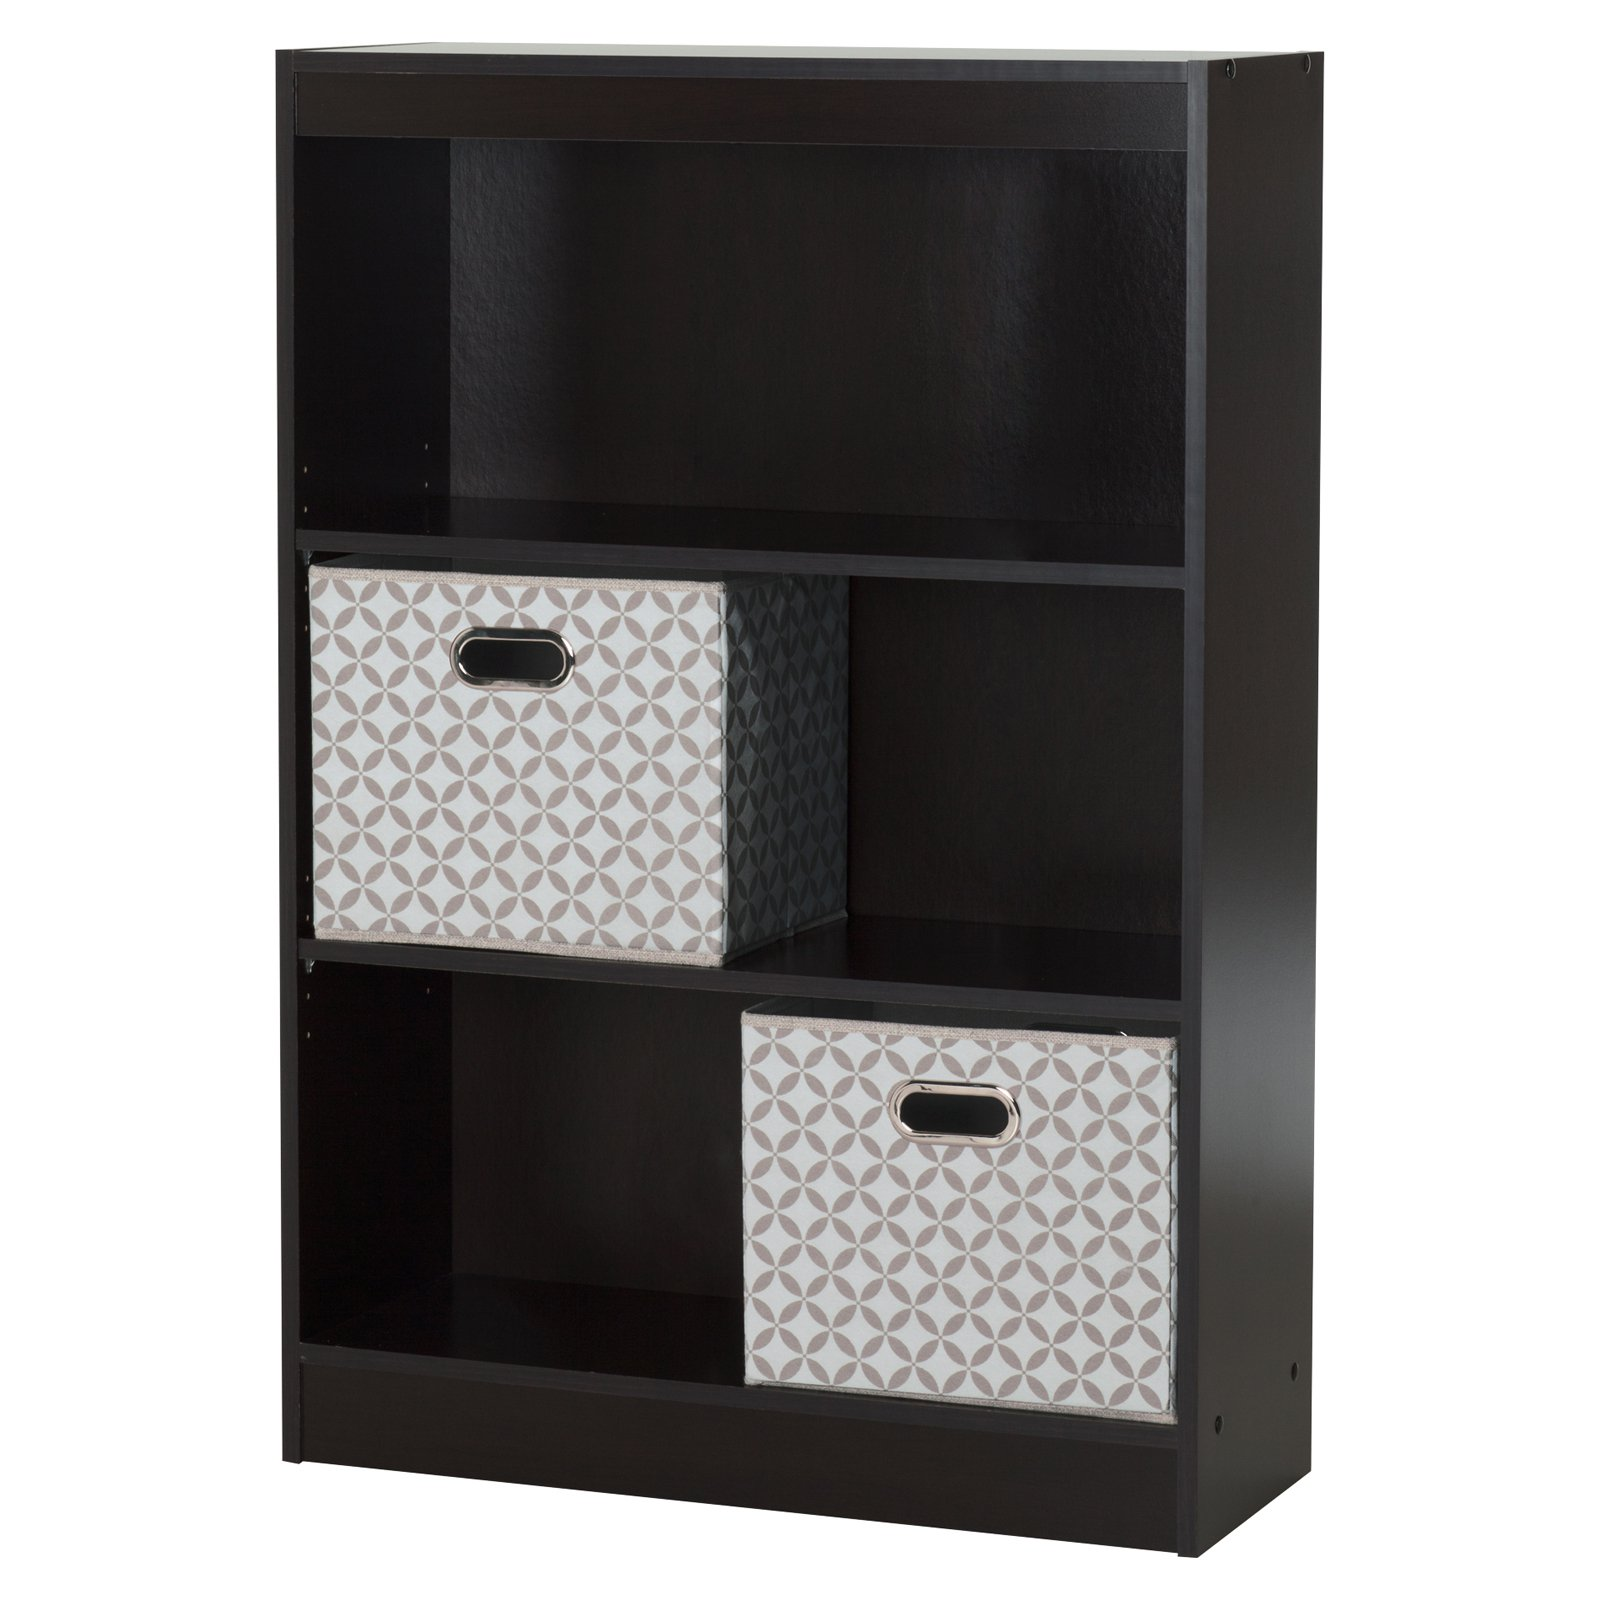 3 Shelf Bookcase with 2 Fabric Storage Baskets by South Shore by South Shore